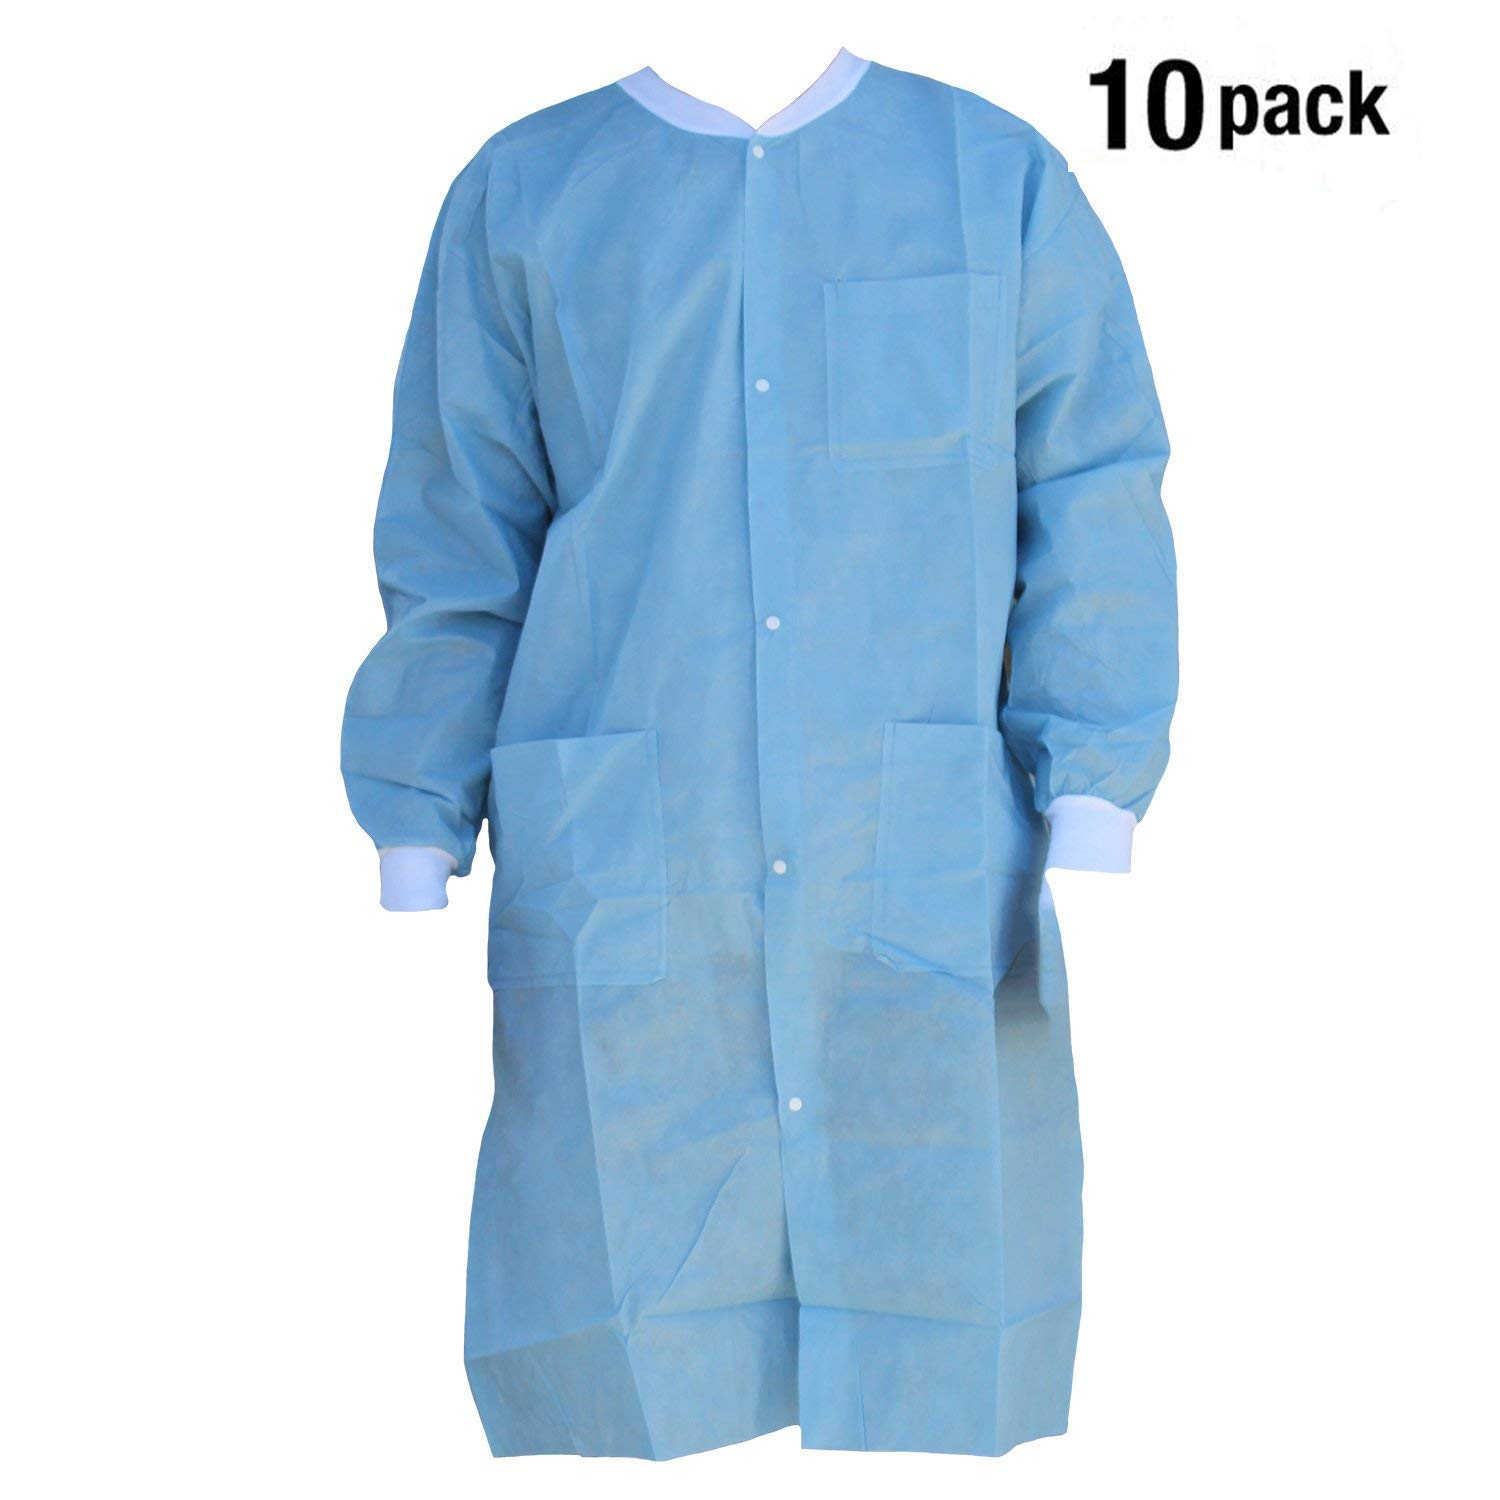 Vivid Professional Lab Coat for Laboratory with 5 Button Closure, Ceil Blue, Pack of 10 (Large, Ceil Blue)